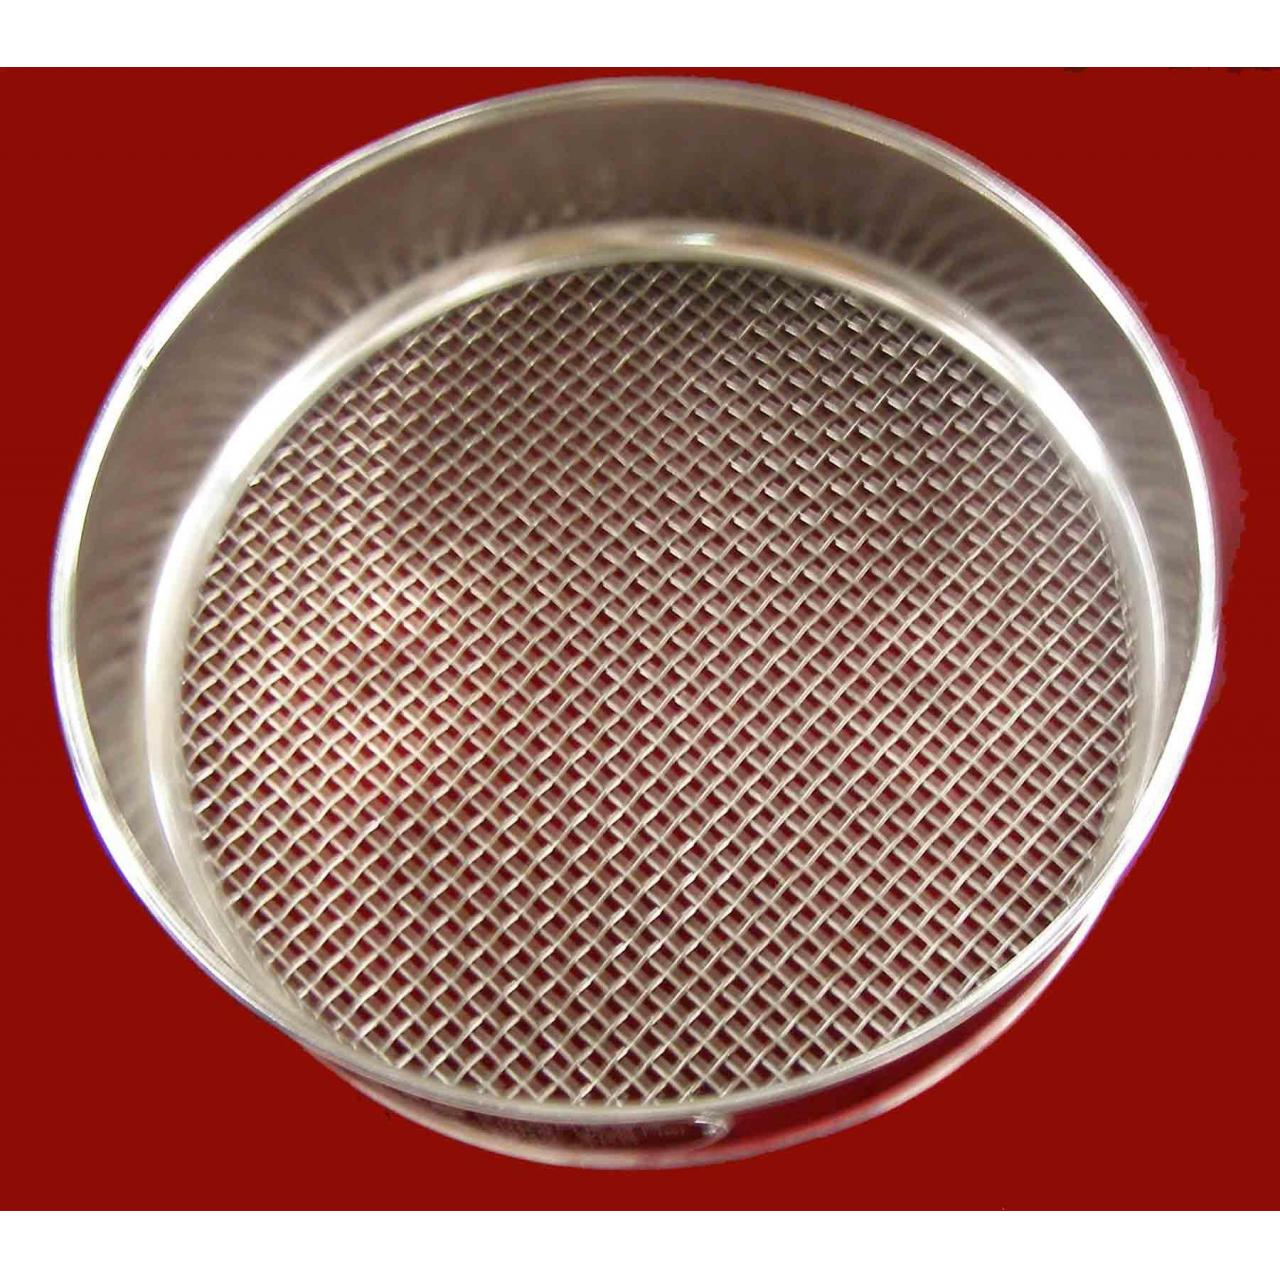 Quality fine stainless steel wire test sieve test sieve for sale